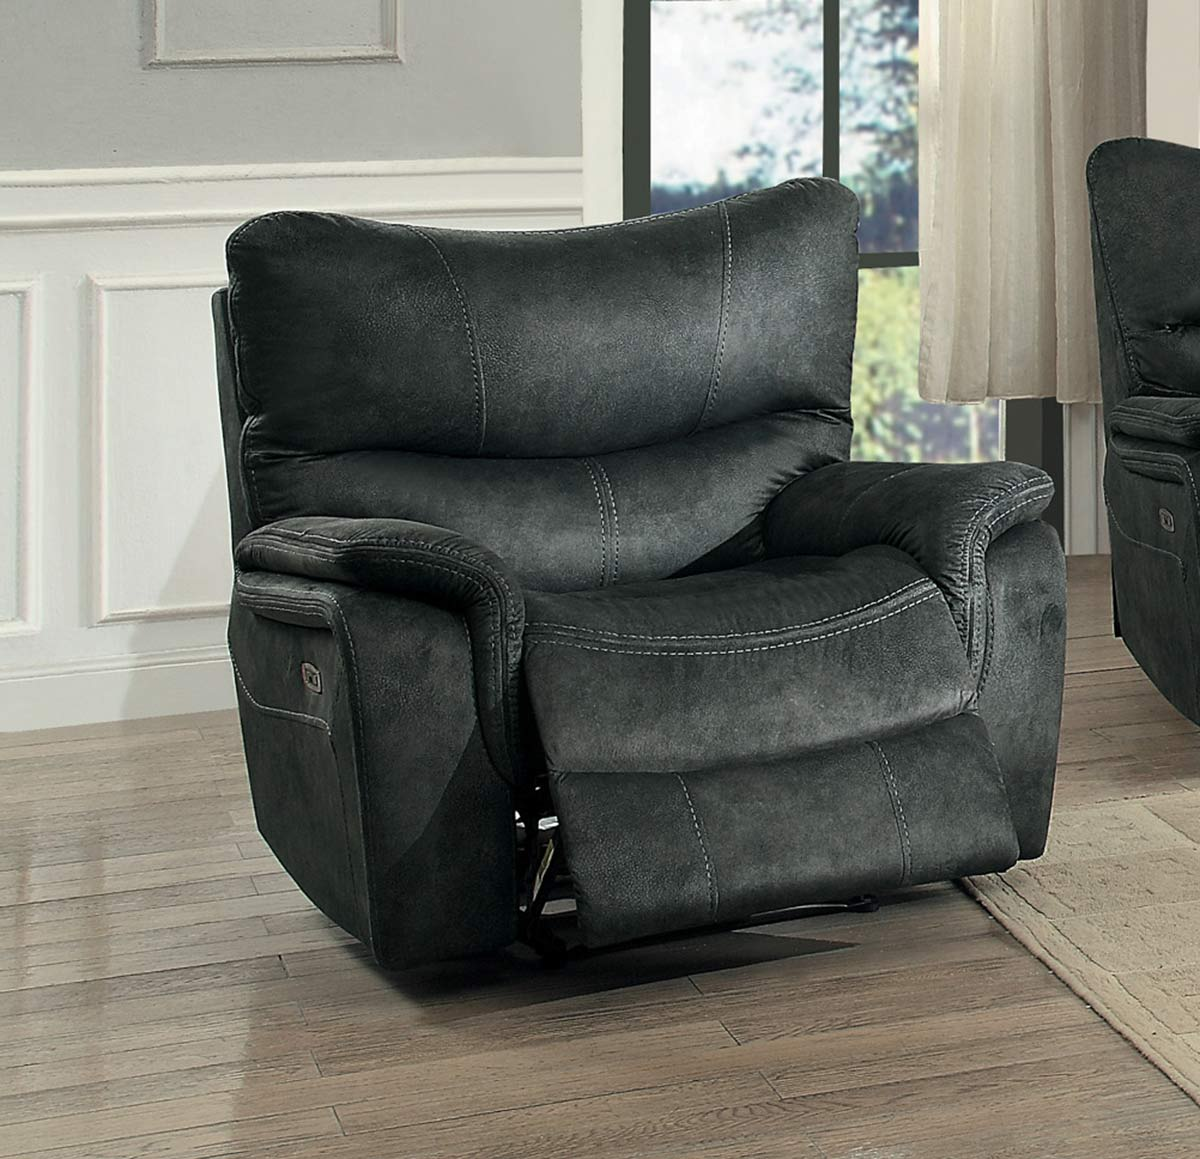 Homelegance Goby Power Reclining Chair With Power Headrest - Dark Gray